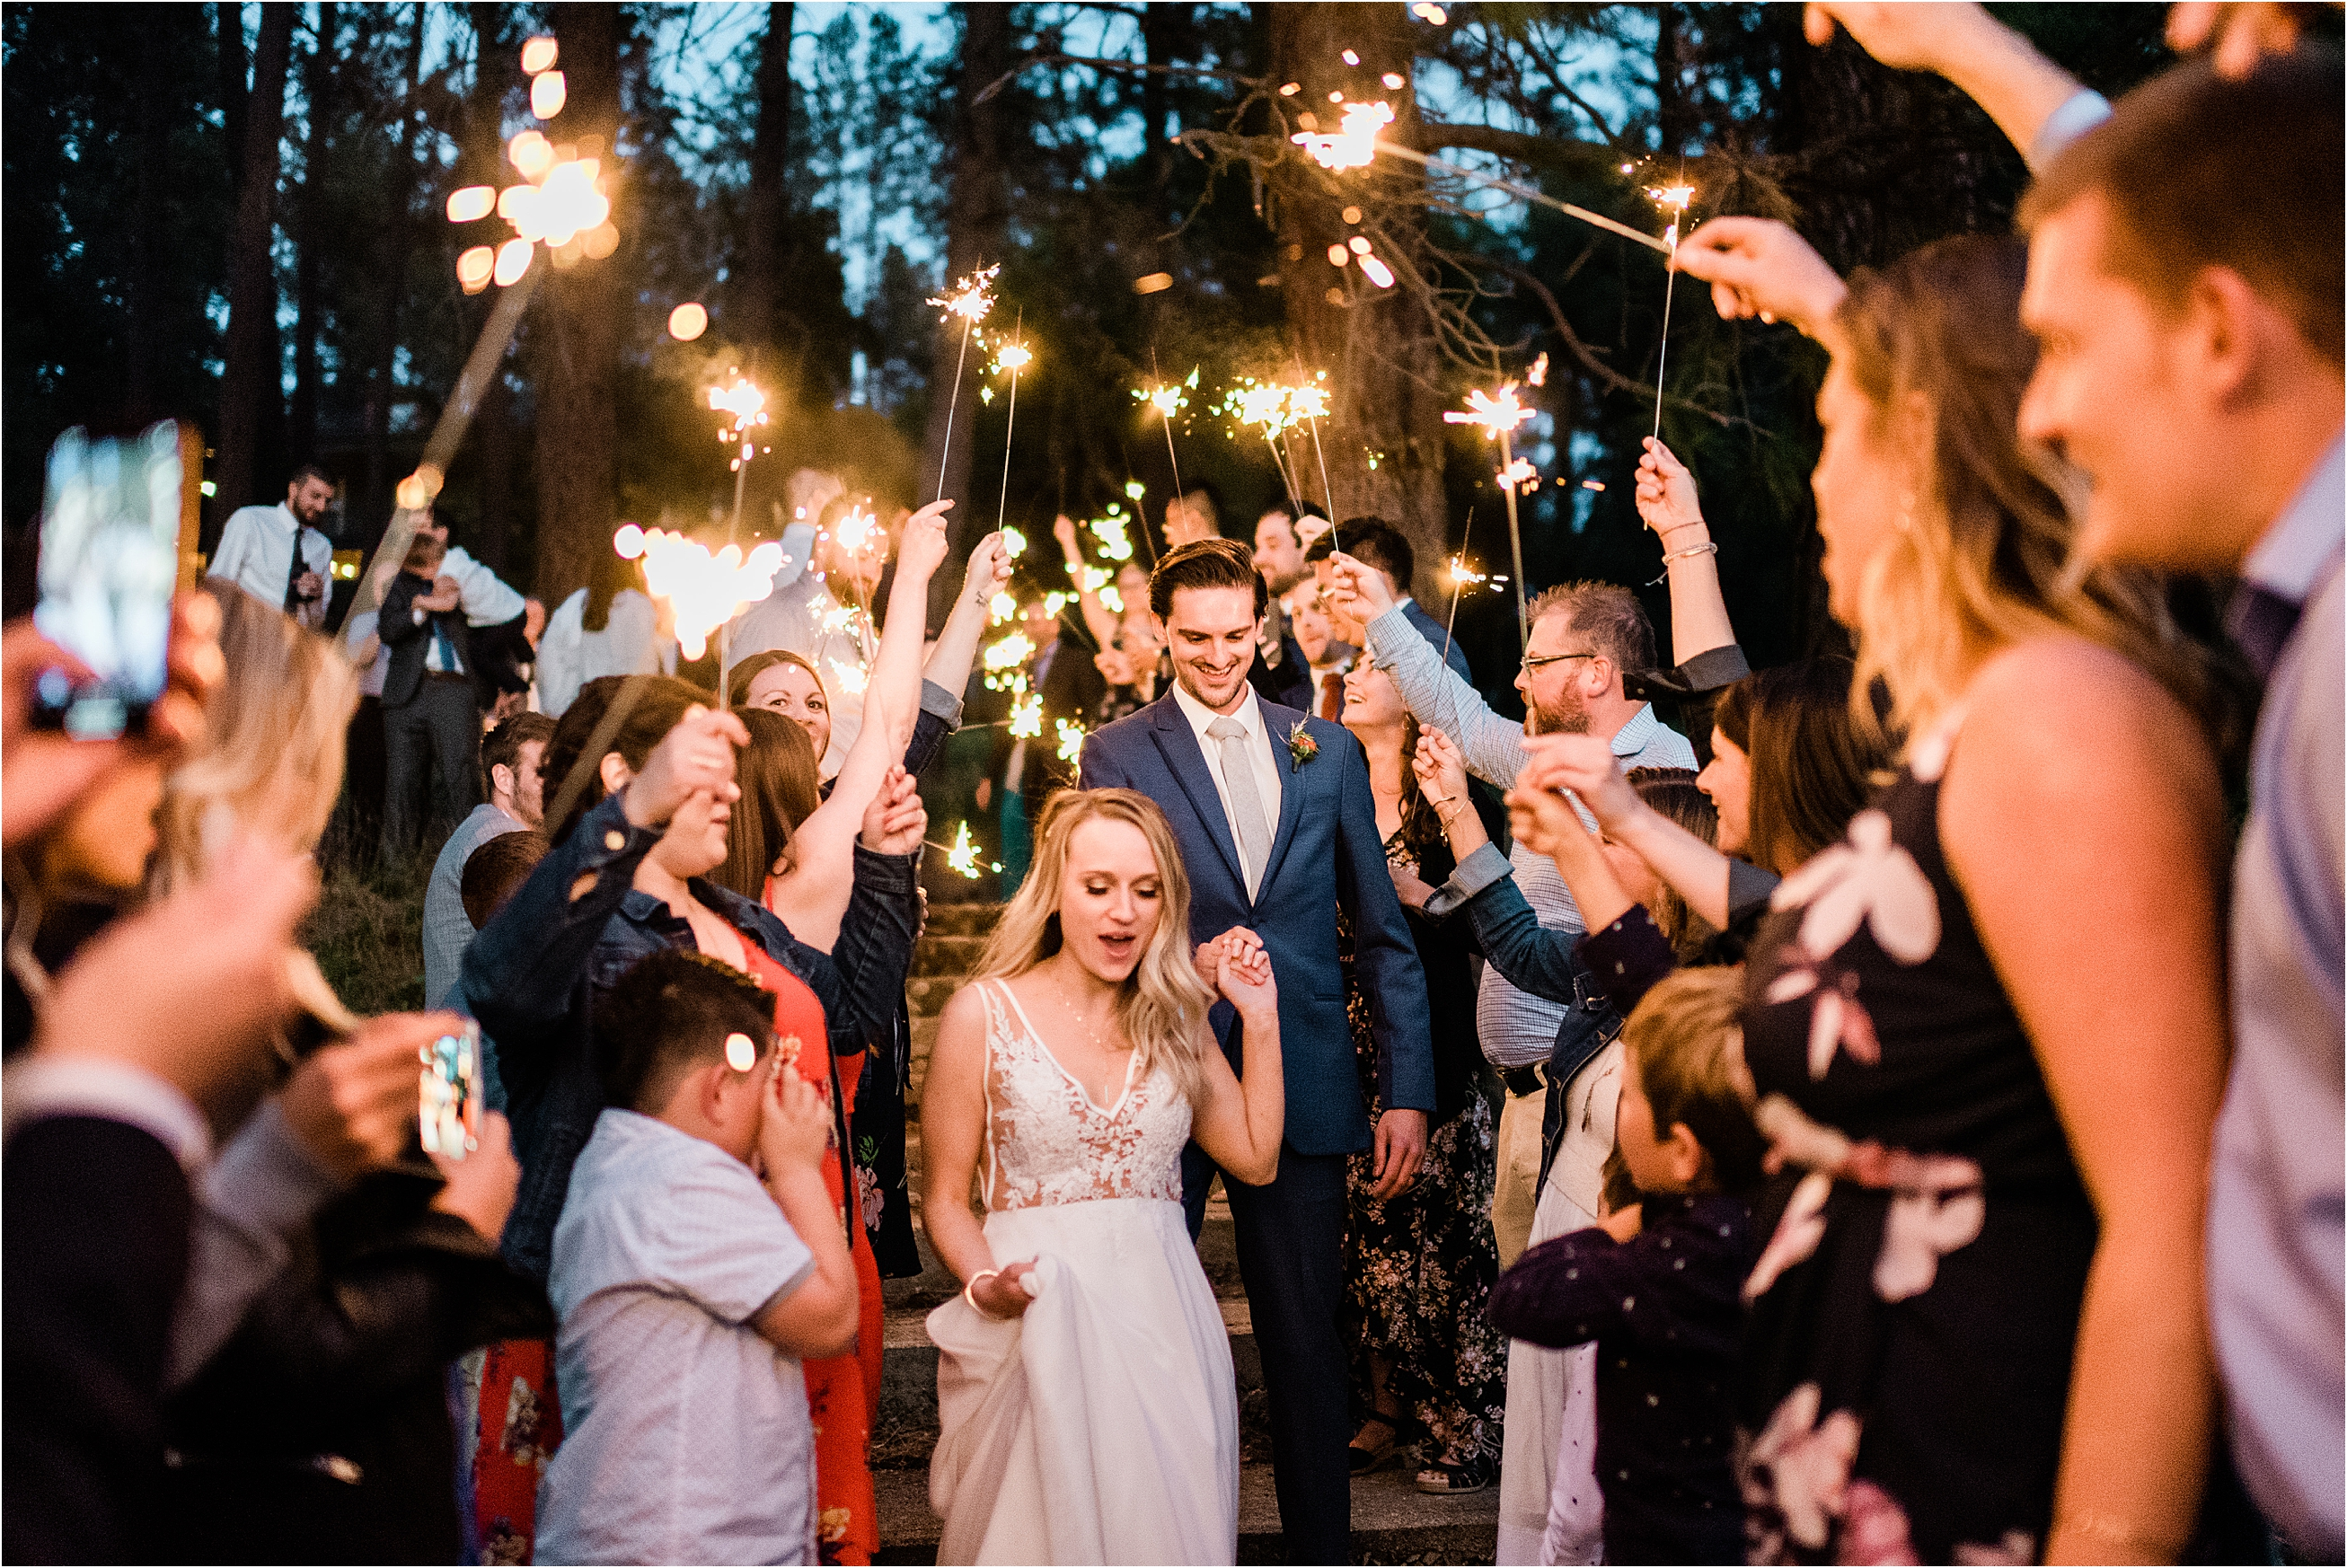 Zephyr Lodge Wedding Sparkler Exit. Image by Forthright Photo